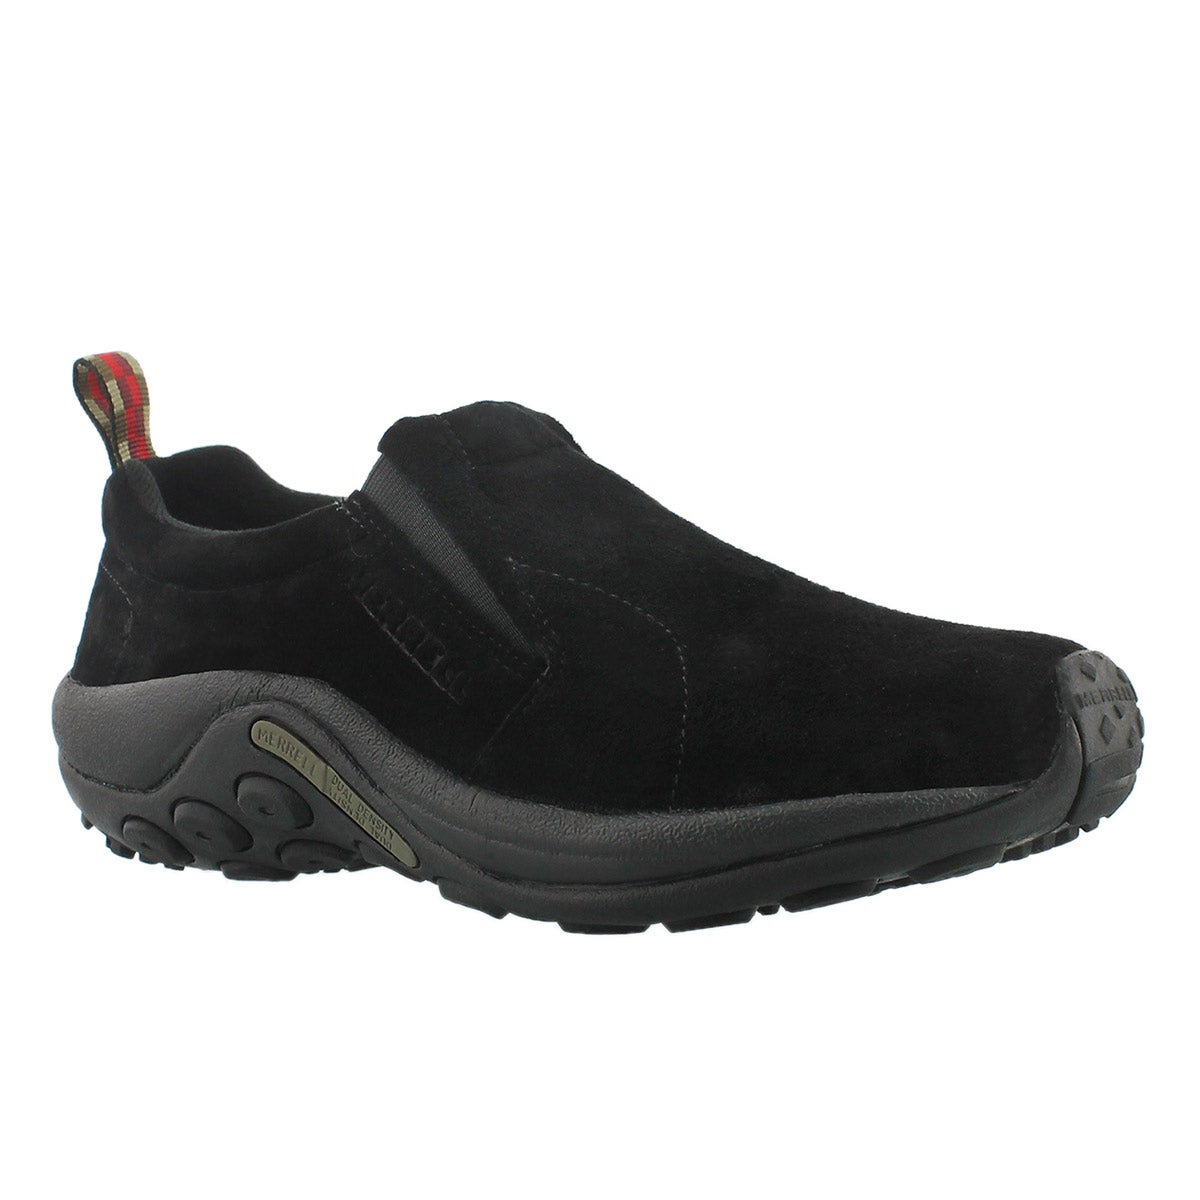 Men's JUNGLE MOC midnight twin gore slip-on shoes